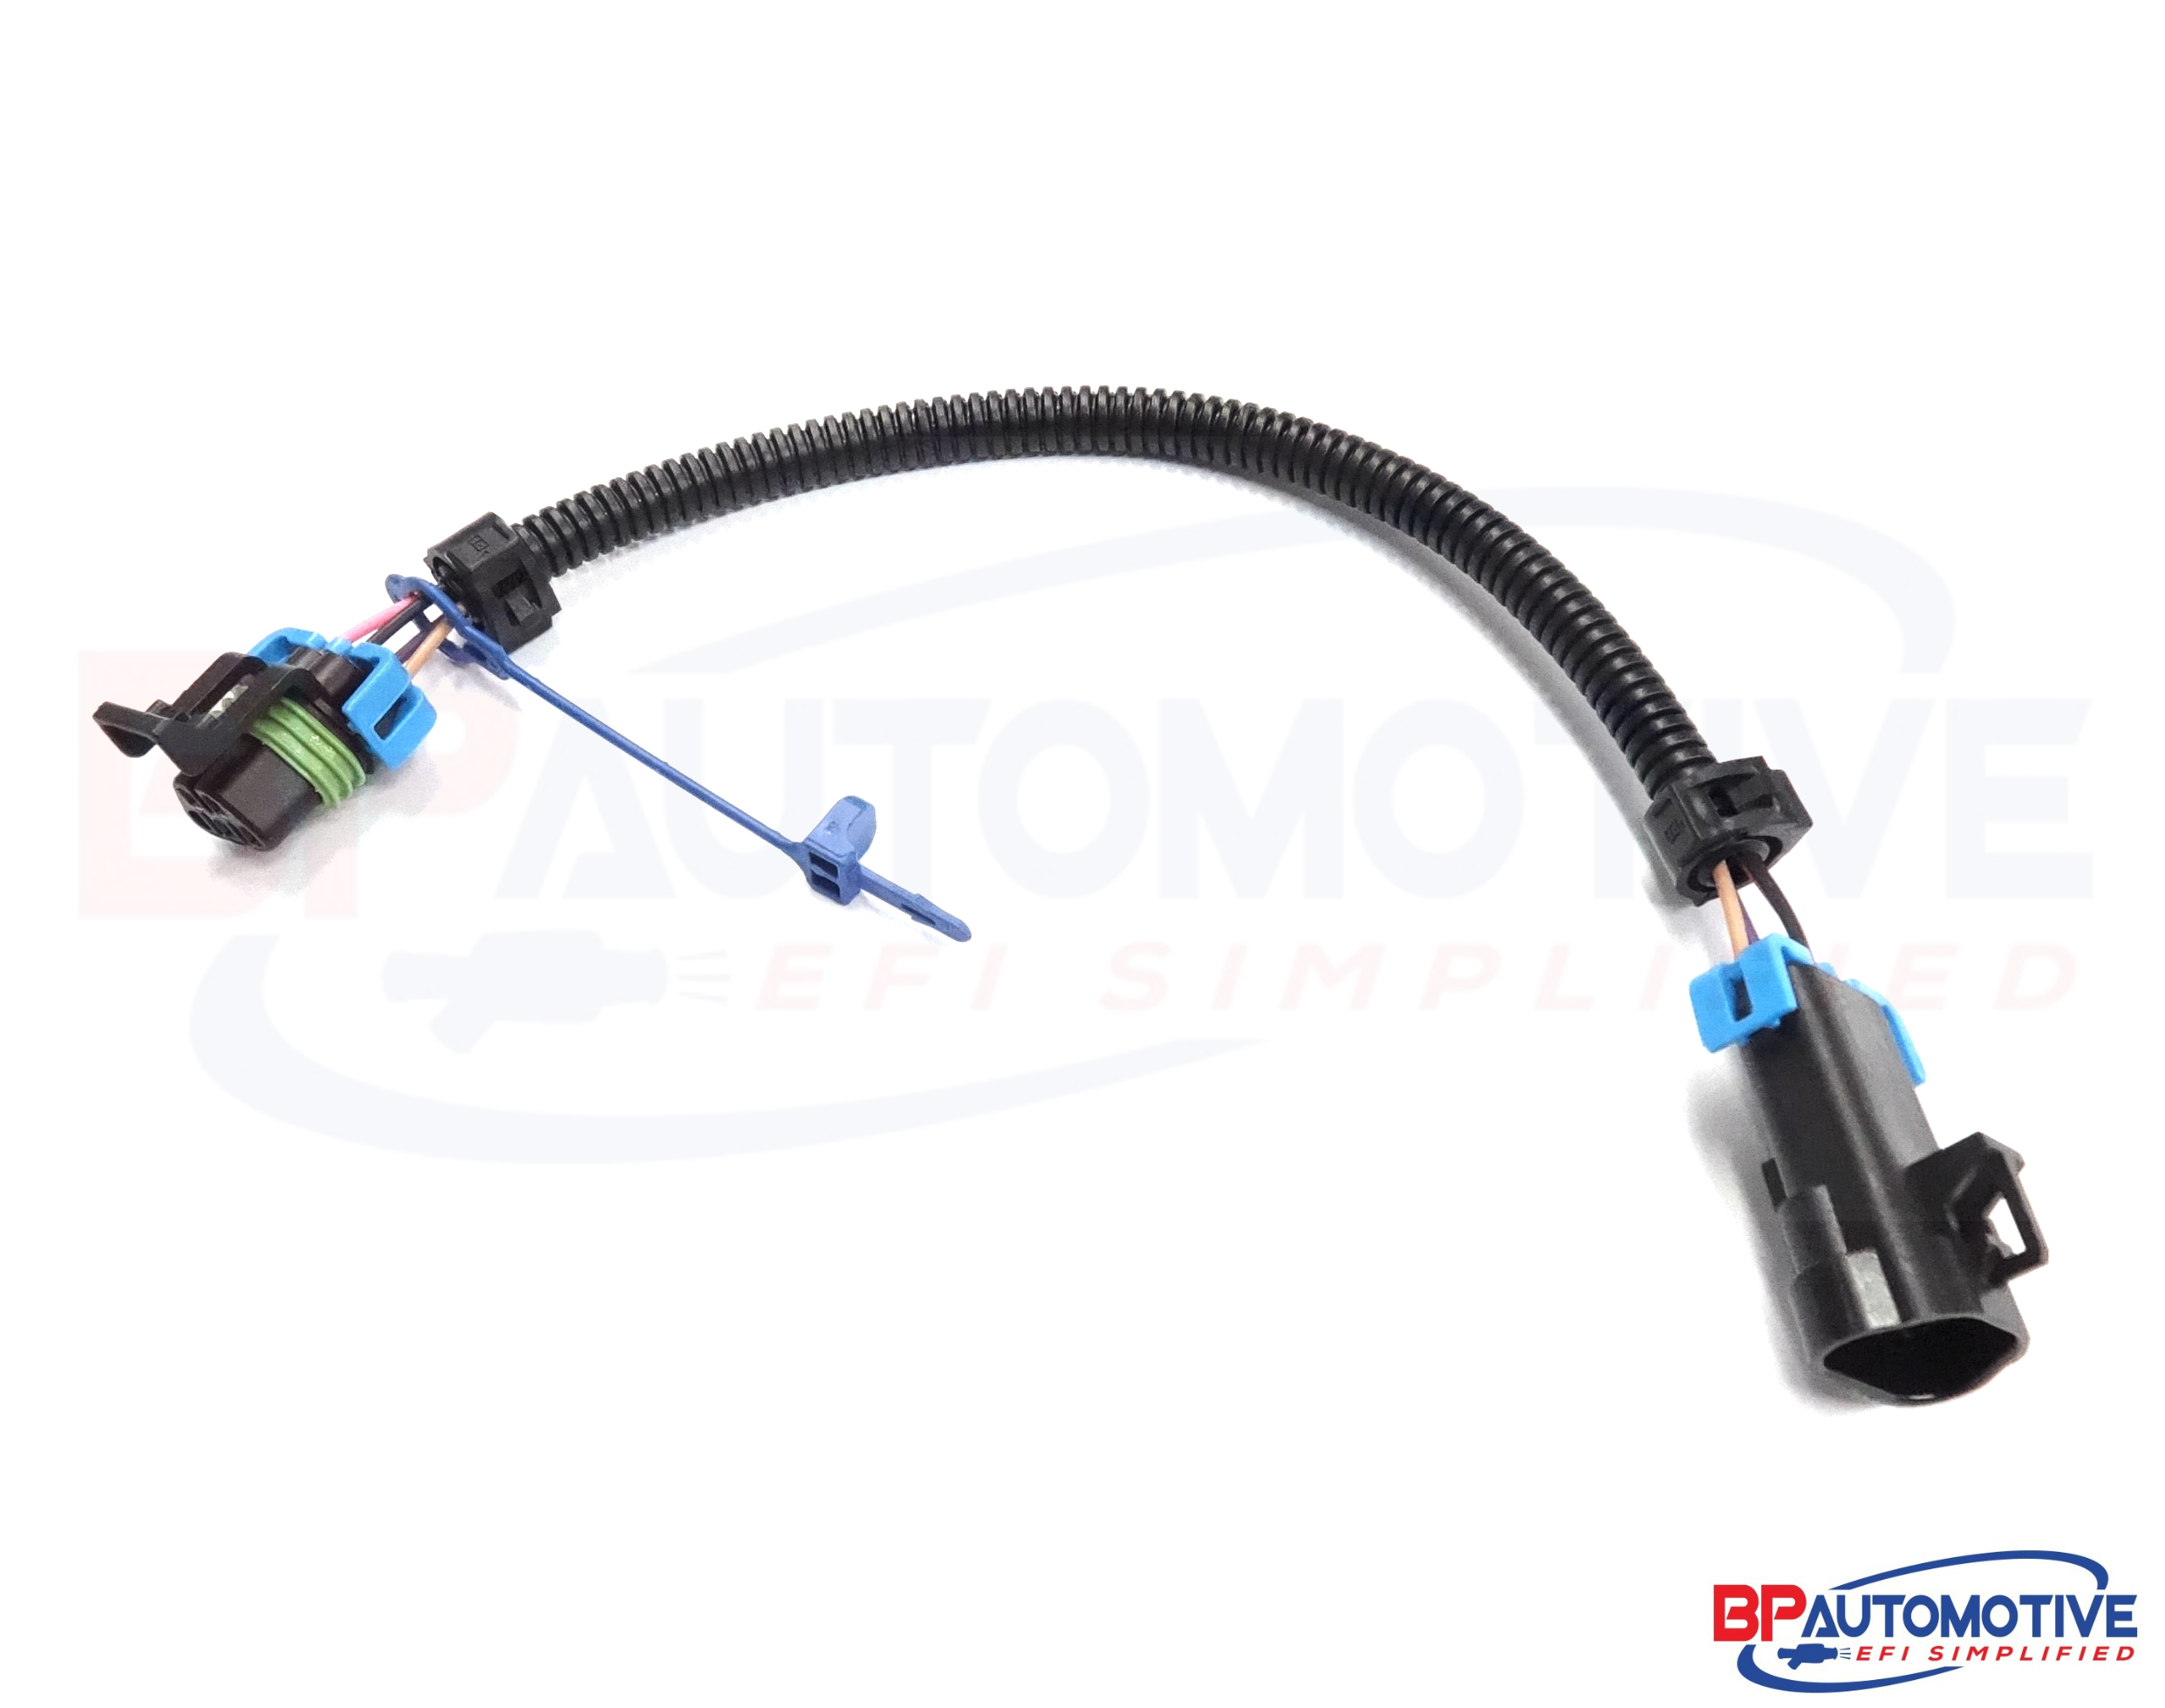 1428517 Ecu Pin Out Termination Locations likewise Low Oxygen Sensor as well Peugeot 206 Fuse Box Diagram as well Faculty further 2006 Dodge Cummins Power Fuse Box Diagram. on oxygen alarm circuit diagram